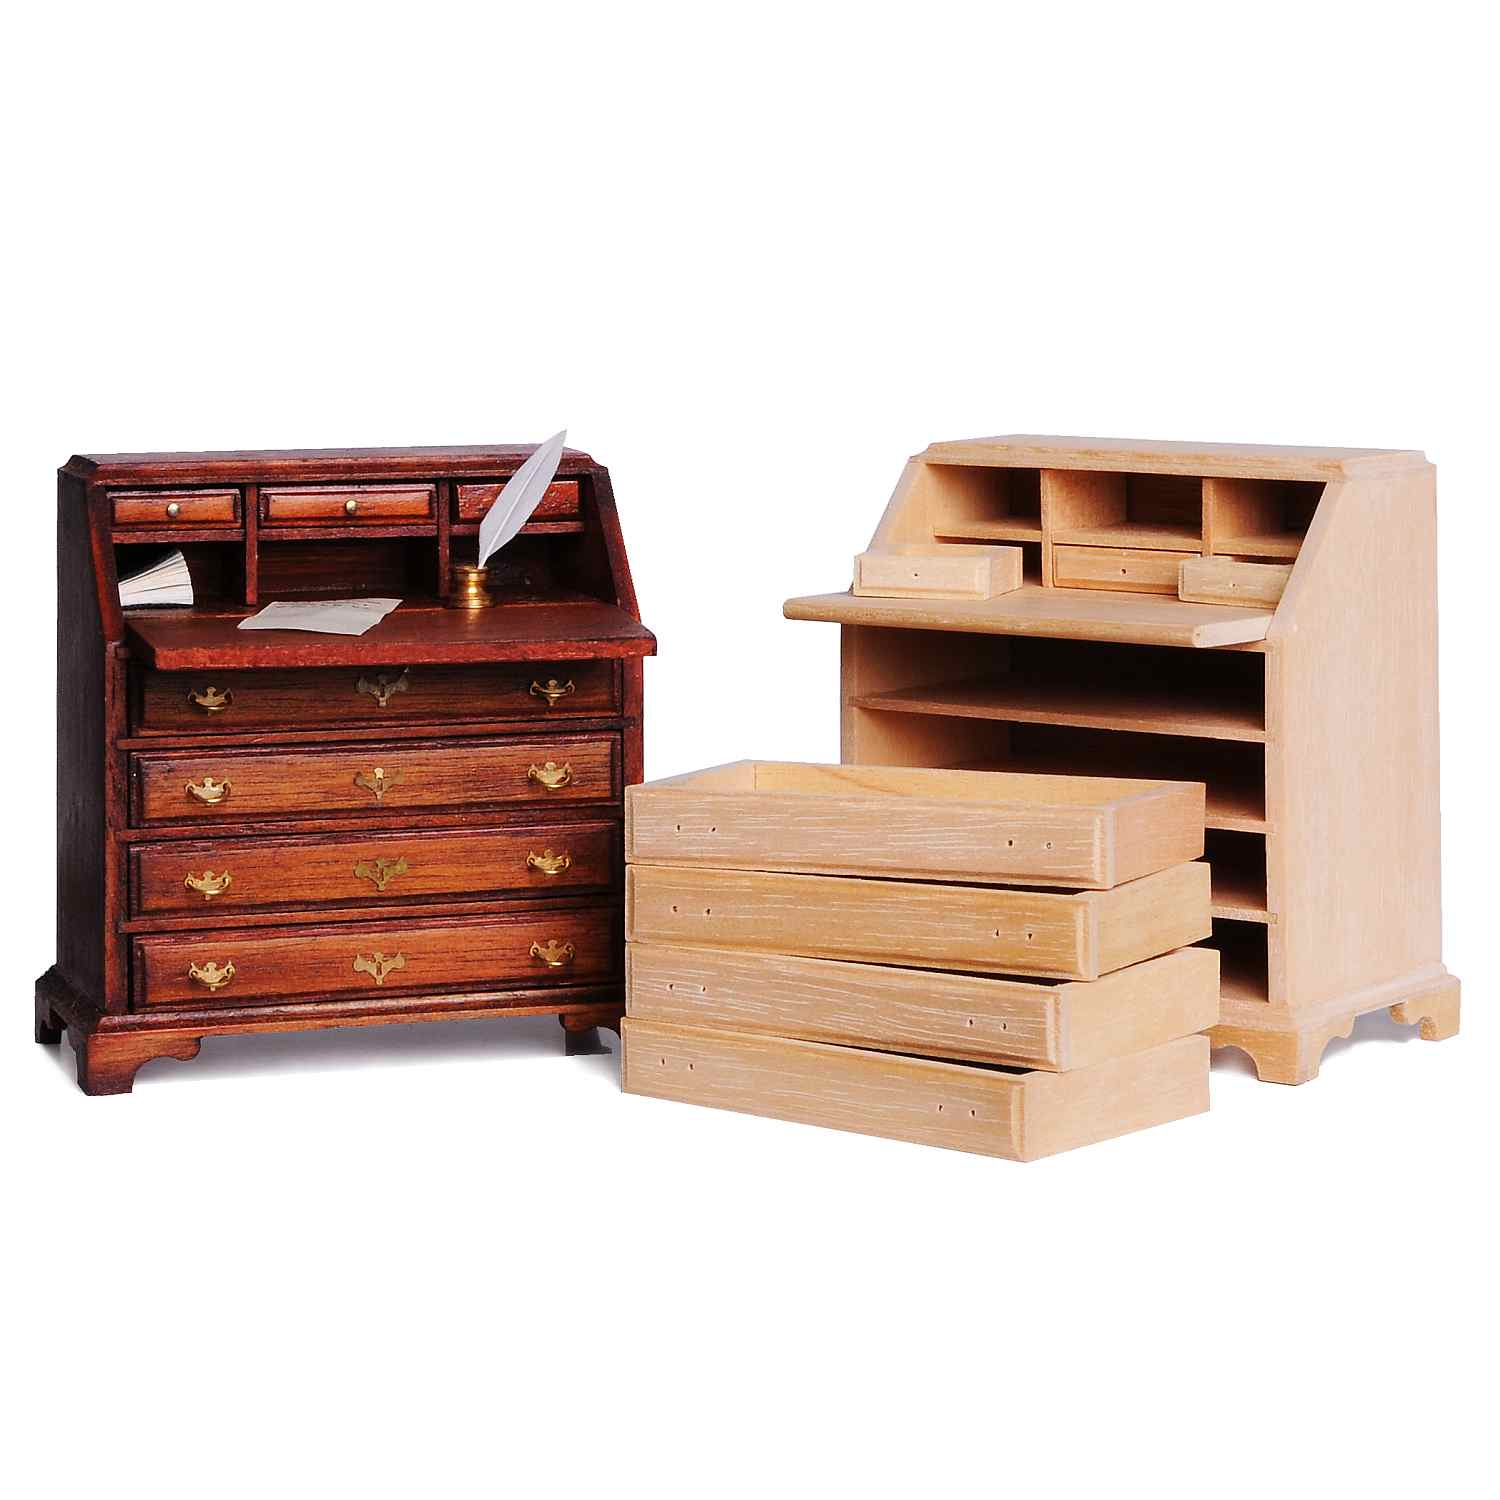 Period Furniture Kits